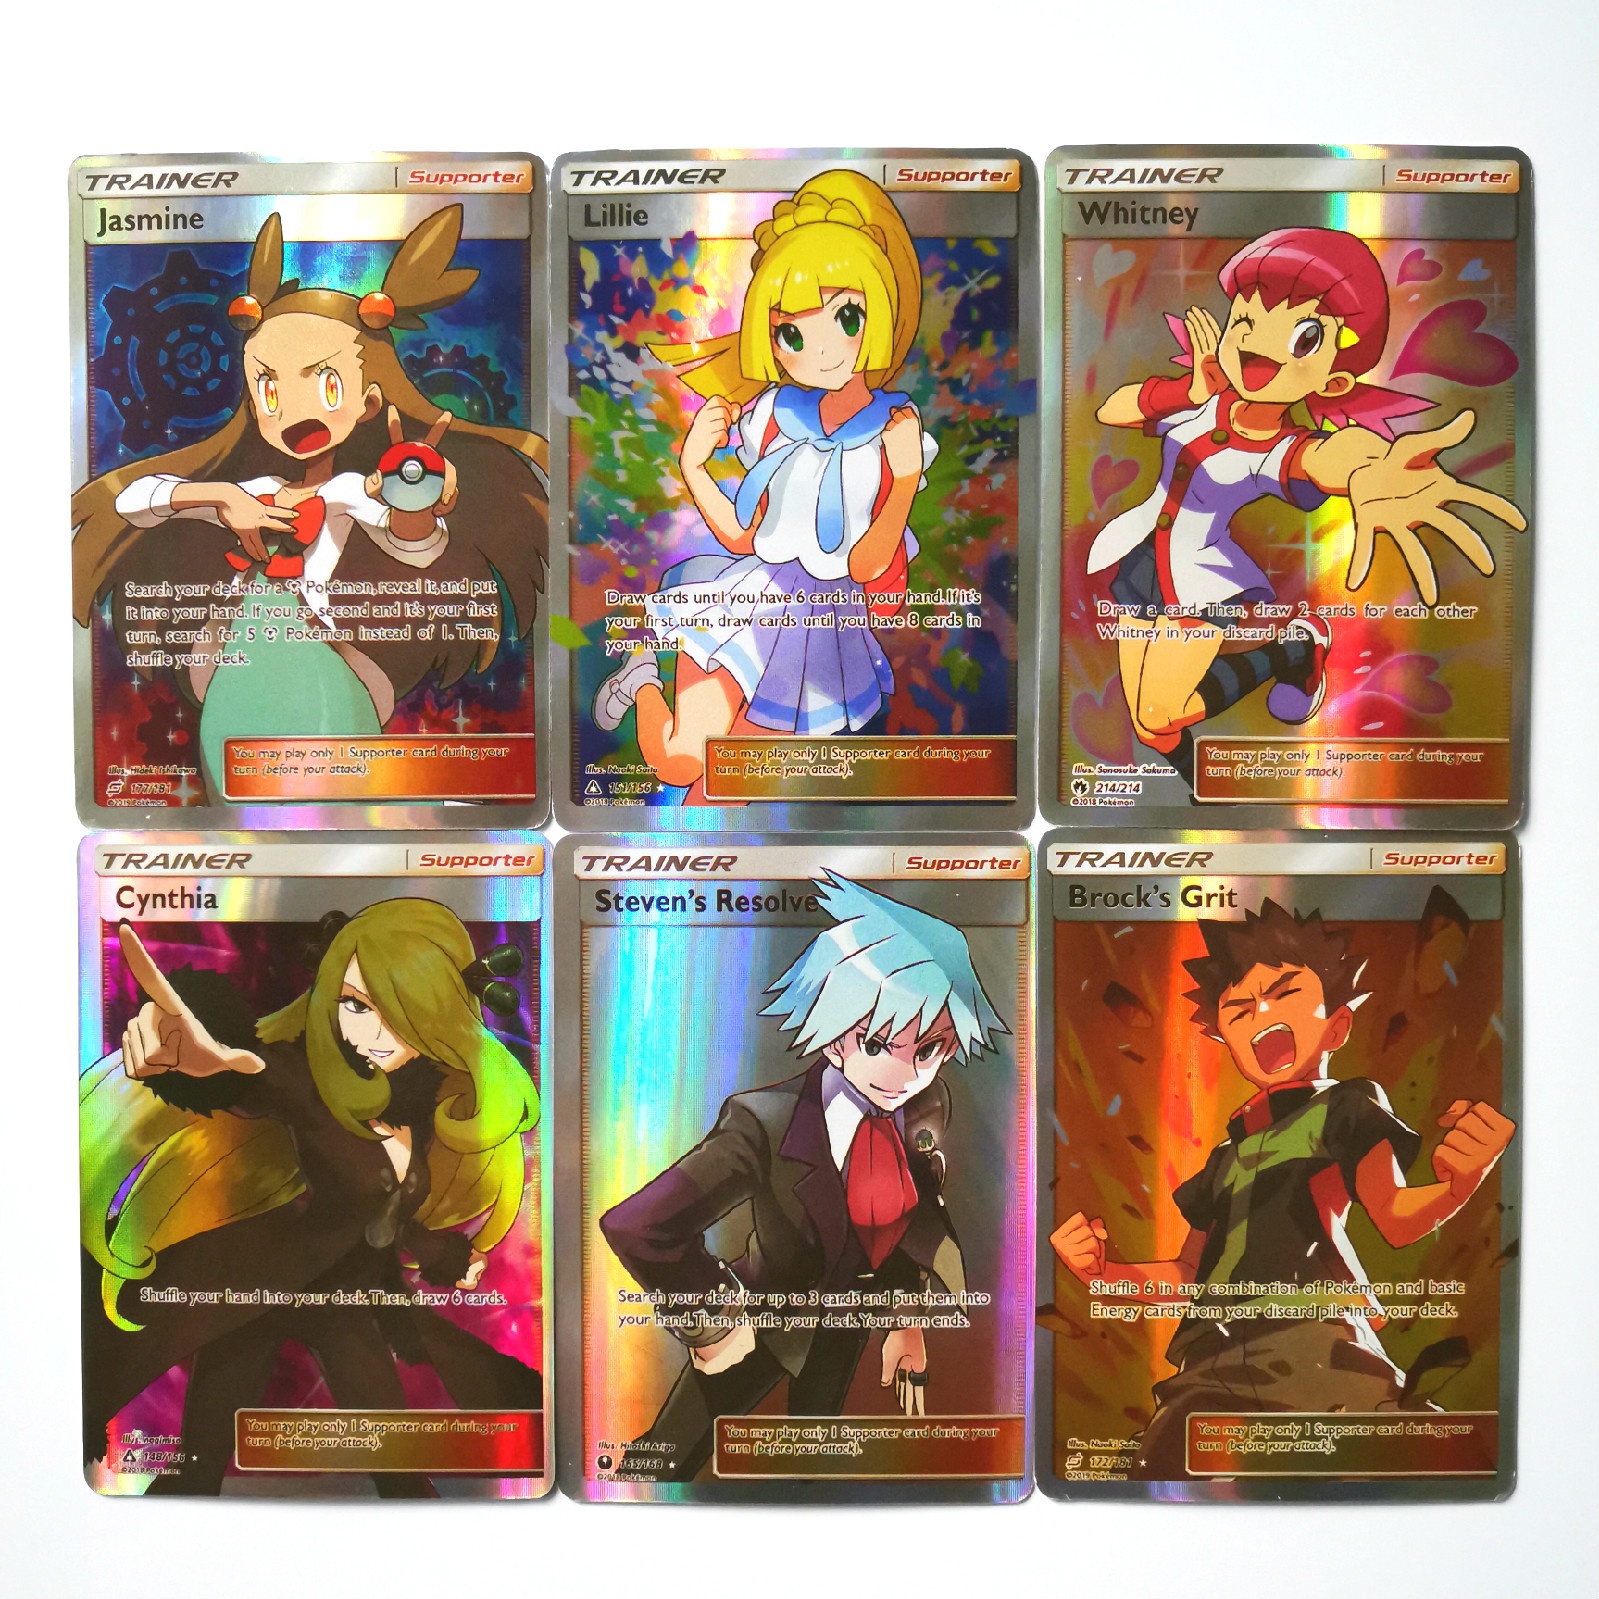 takara-tomy-100pcs-set-font-b-pokemon-b-font-trainer-toys-hobbies-hobby-collectibles-game-collection-anime-cards-for-children-christmas-gift